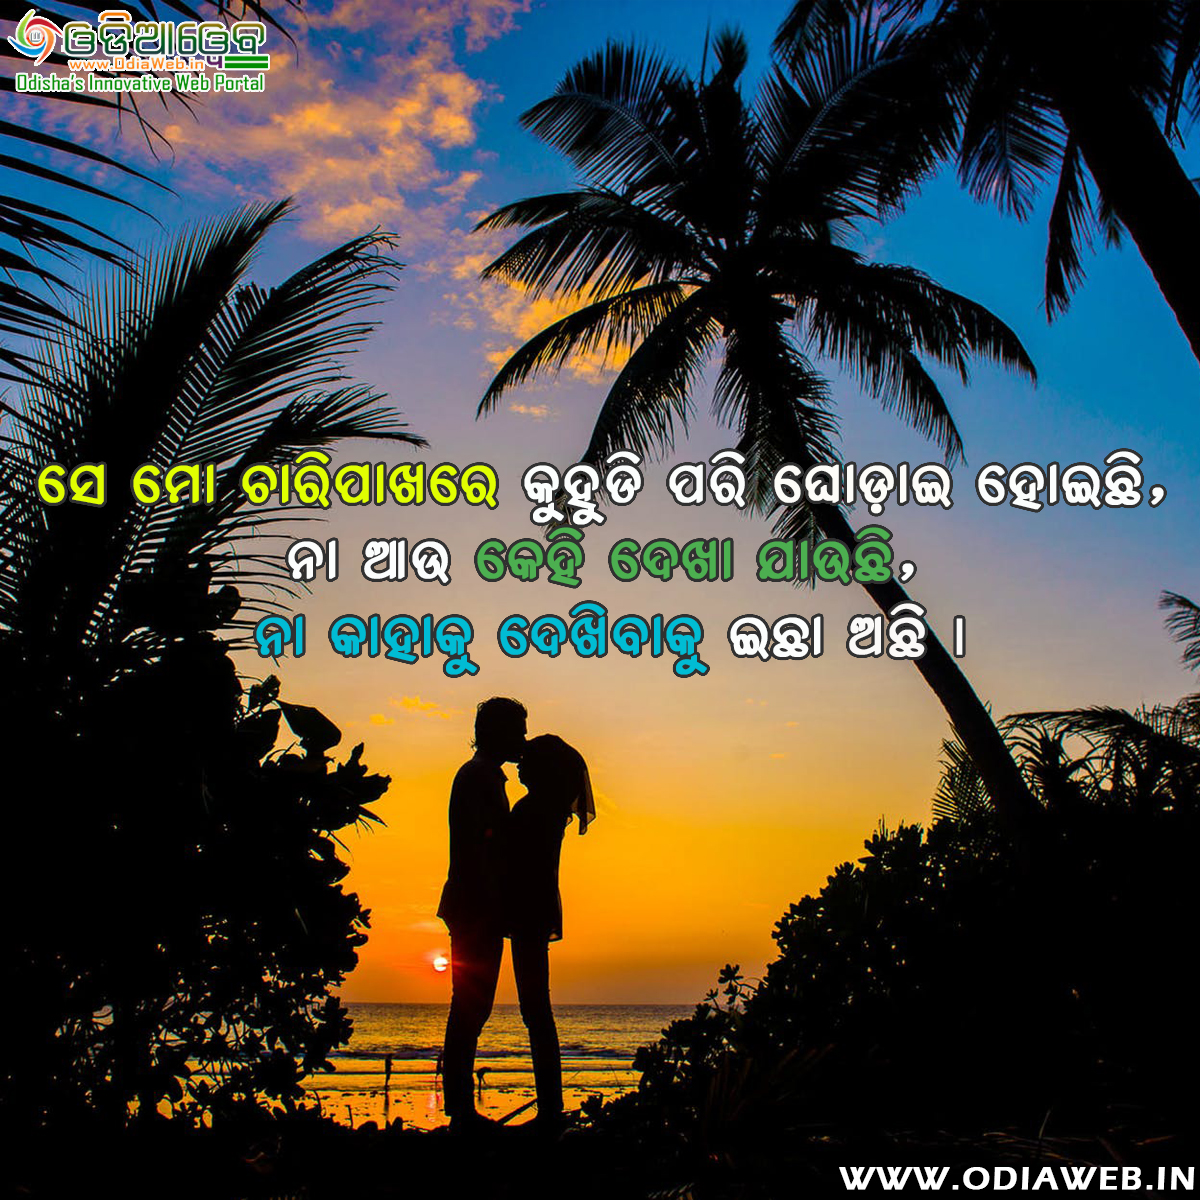 Odia quotes on Love Image